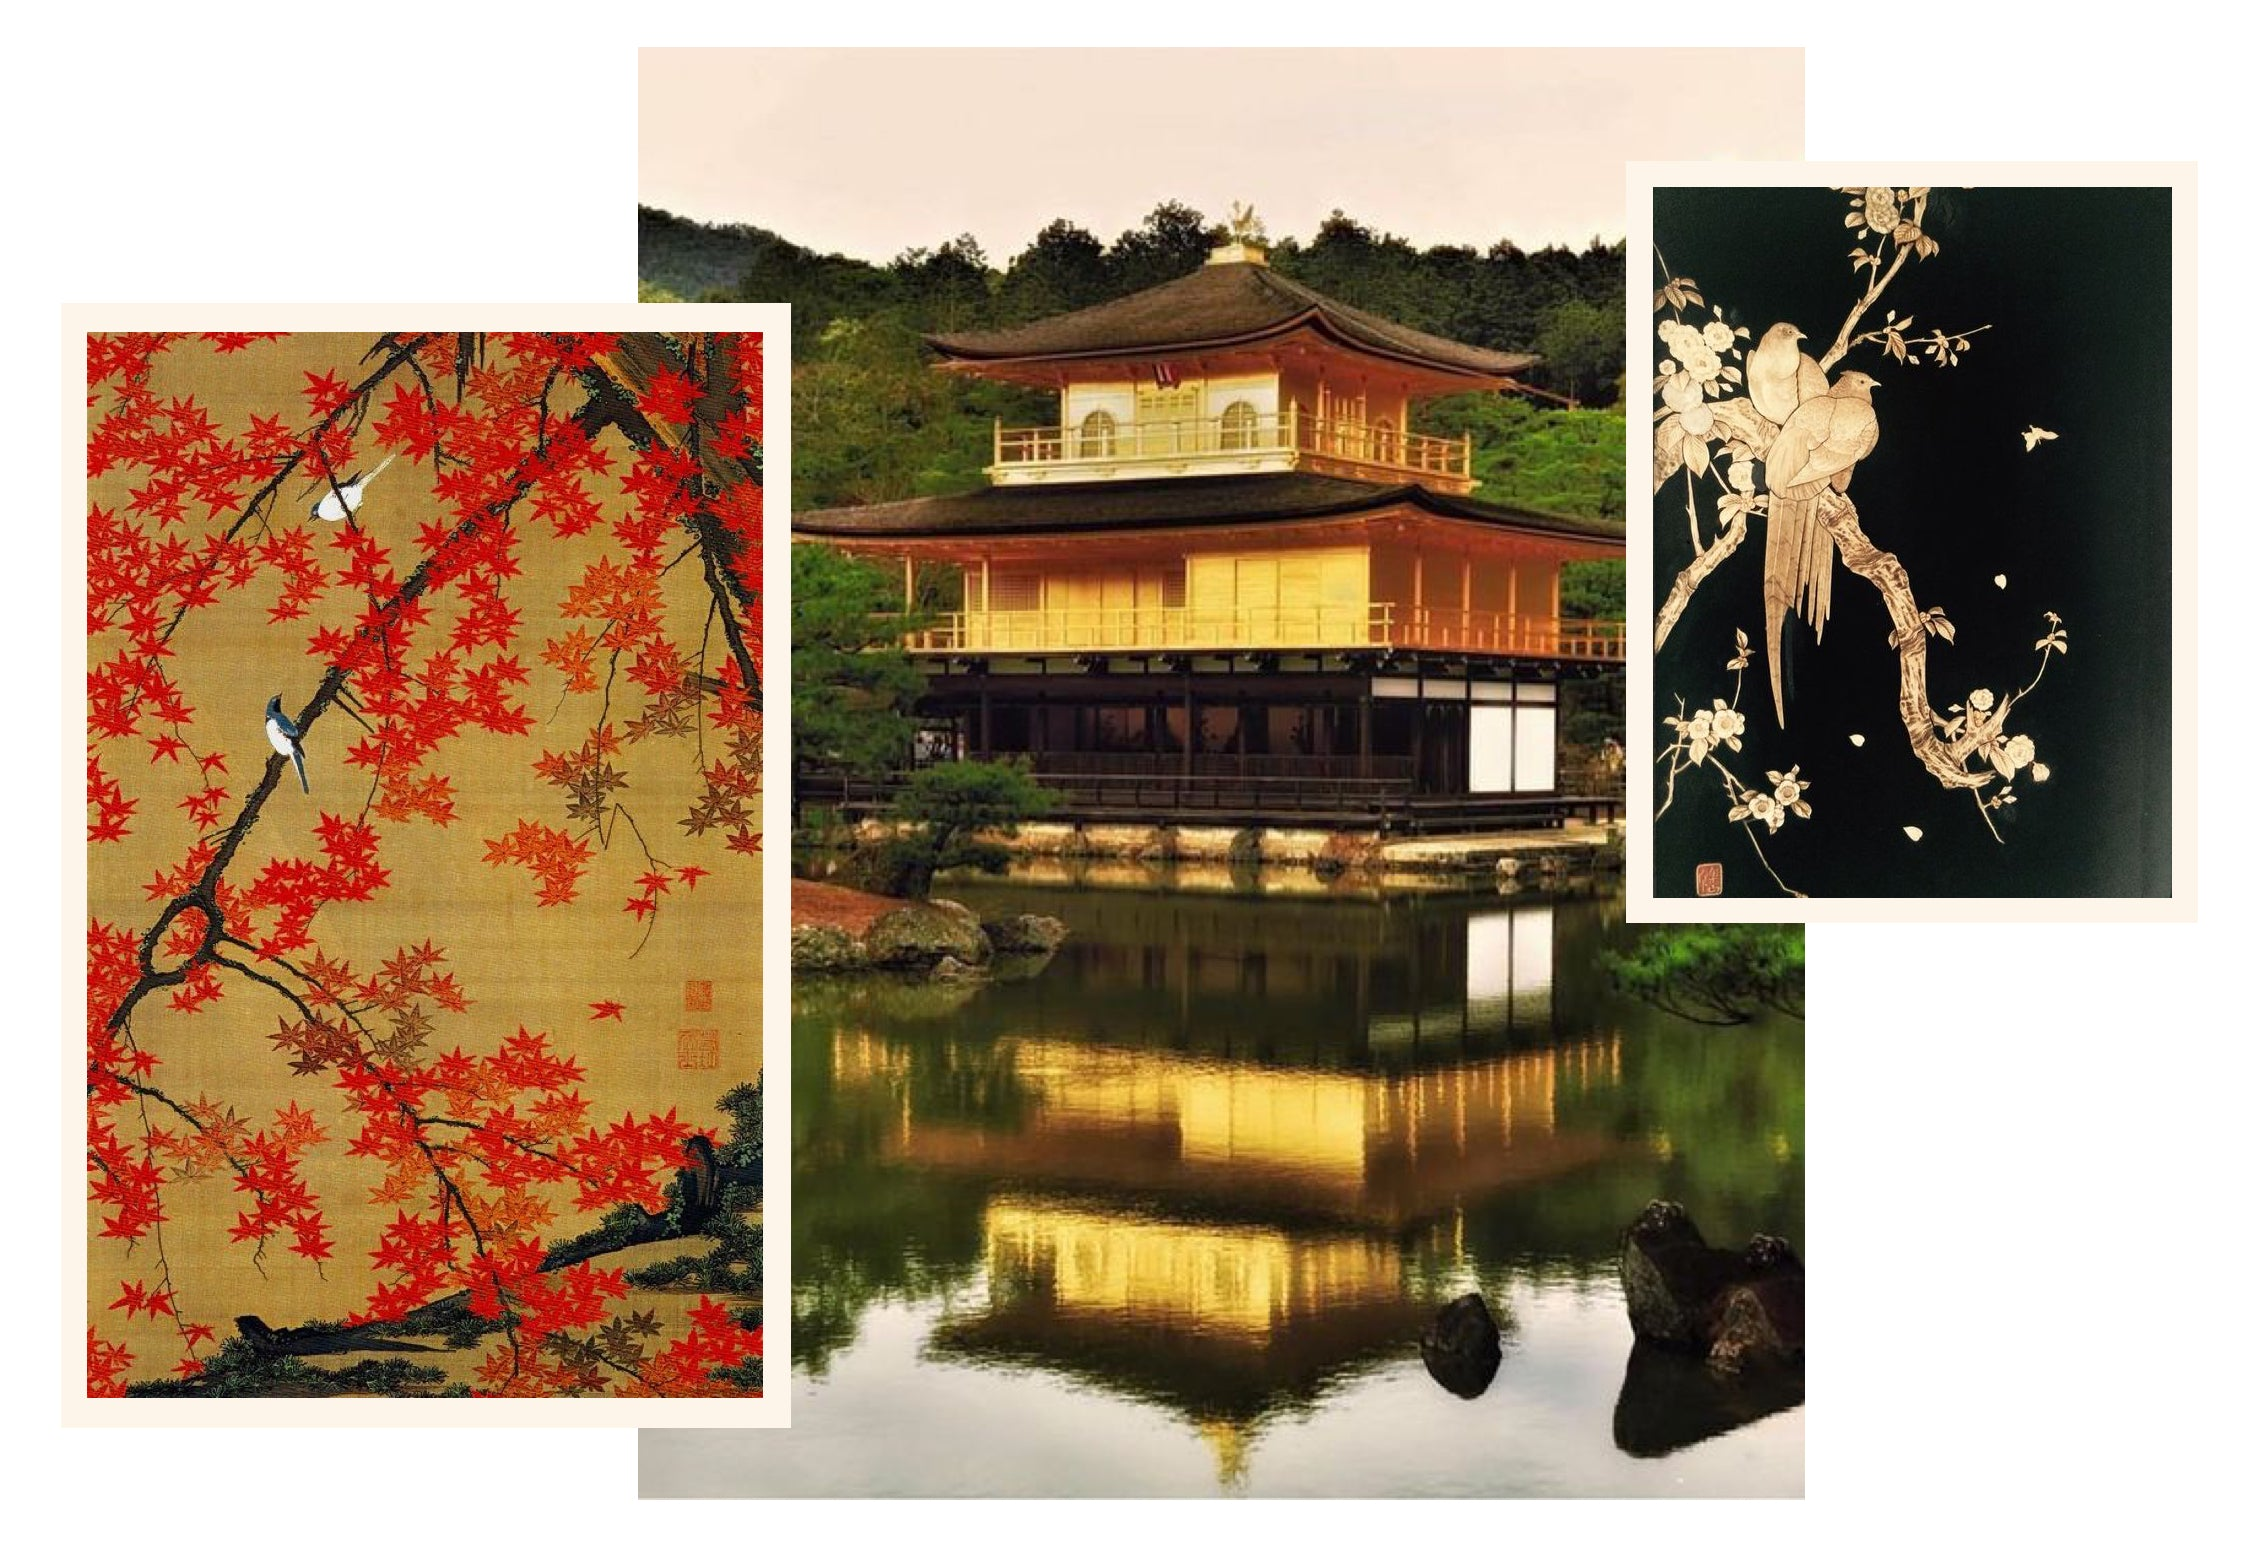 A picture of a zen temple, Japanese maple trees and gold lacquer work